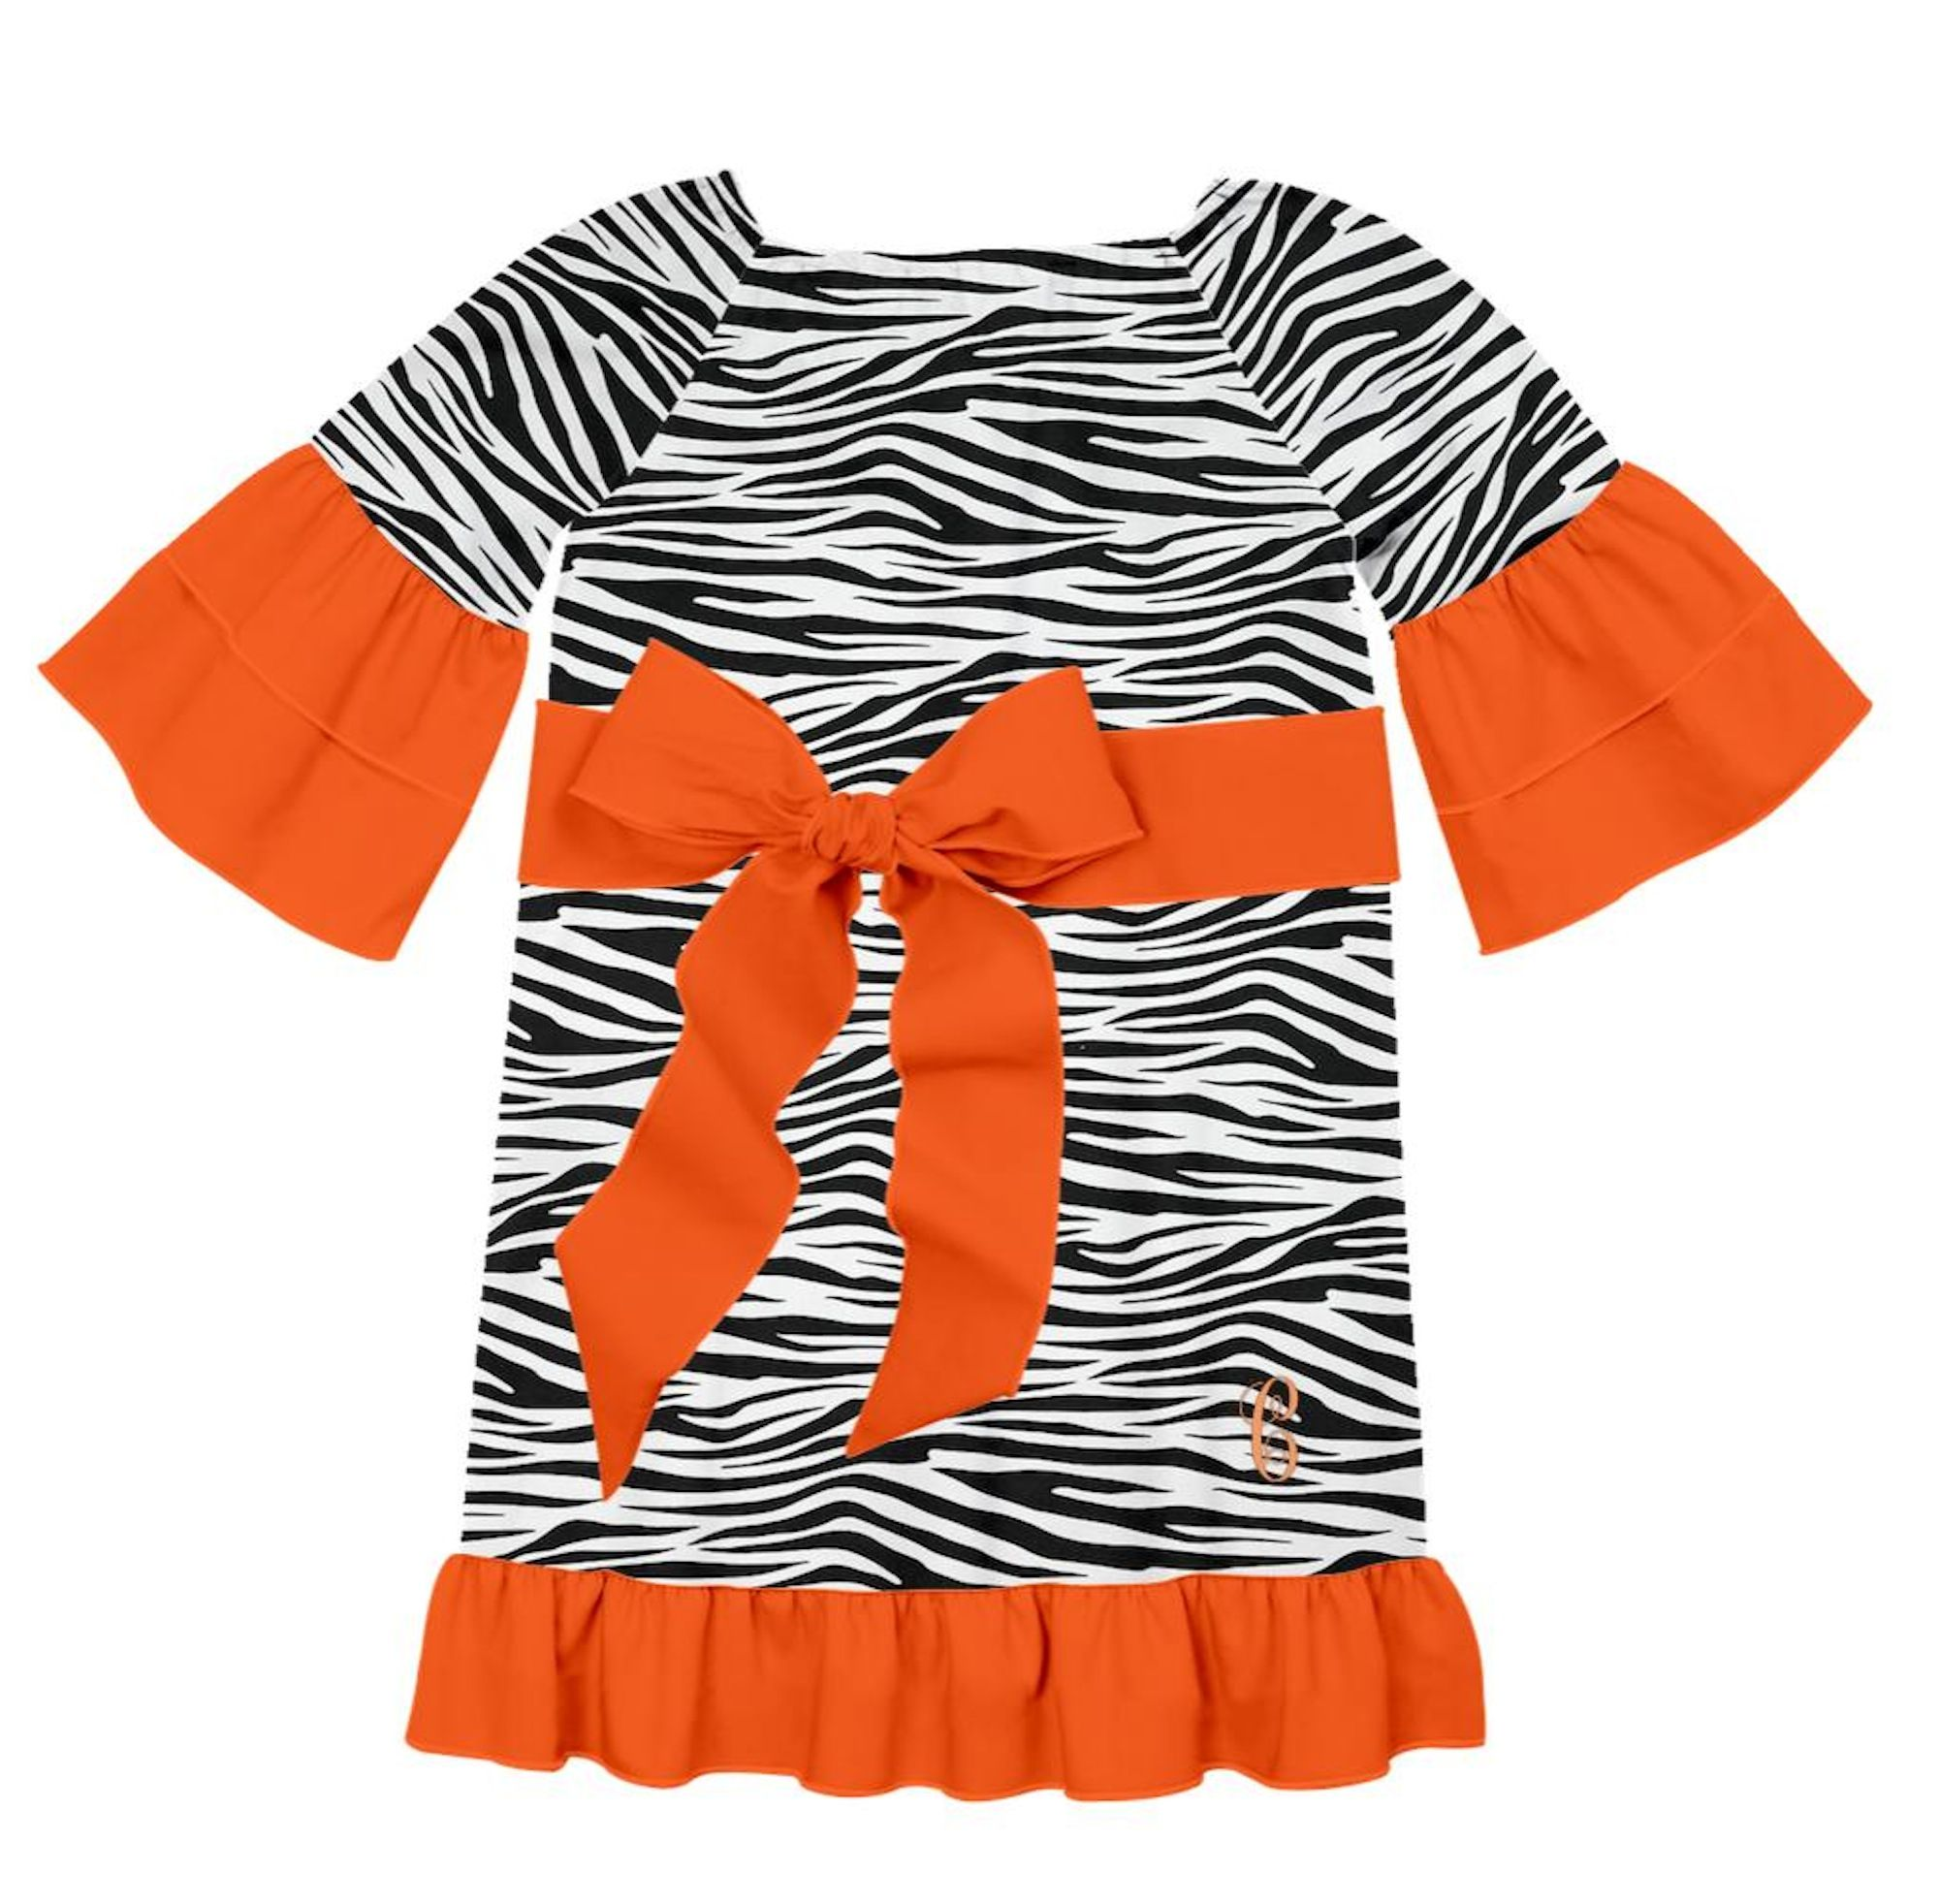 T shirt design app for ipad - Check Out The Dress Sara Hazlewood Created On Designed By Me From Lolly Wolly Doodle Where